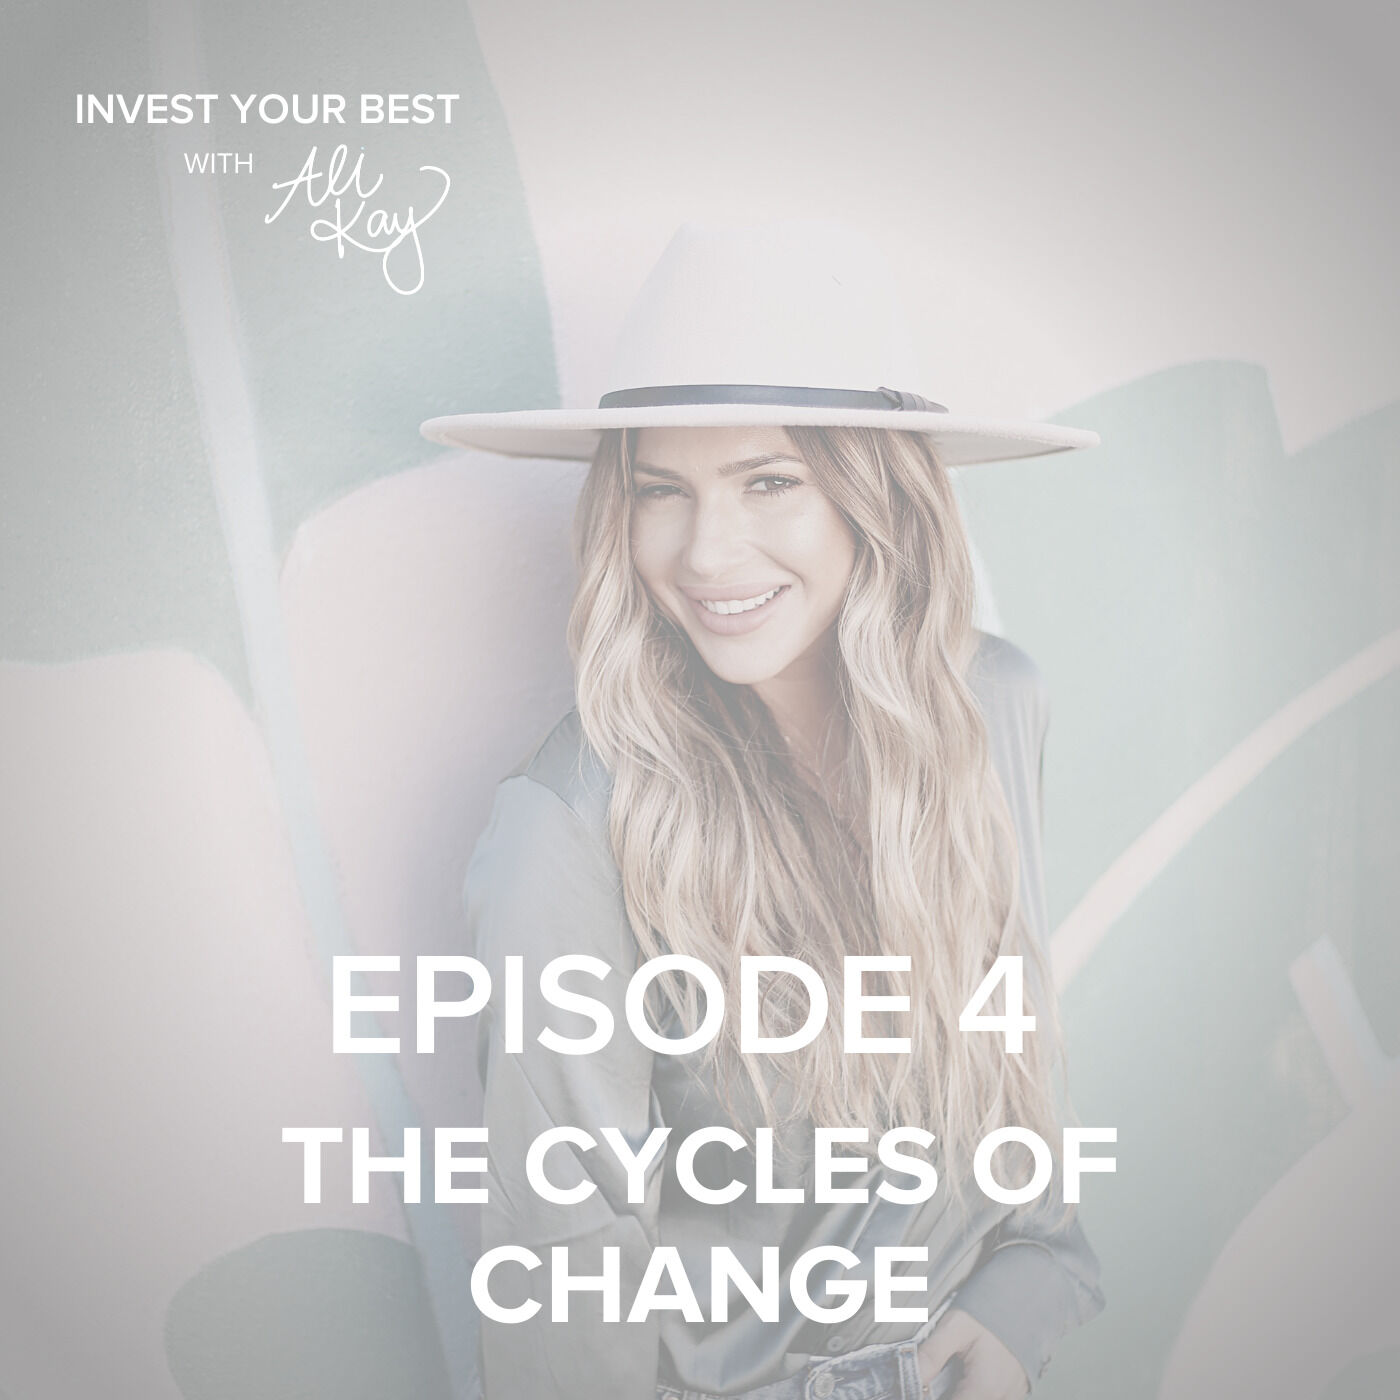 The Cycles of Change